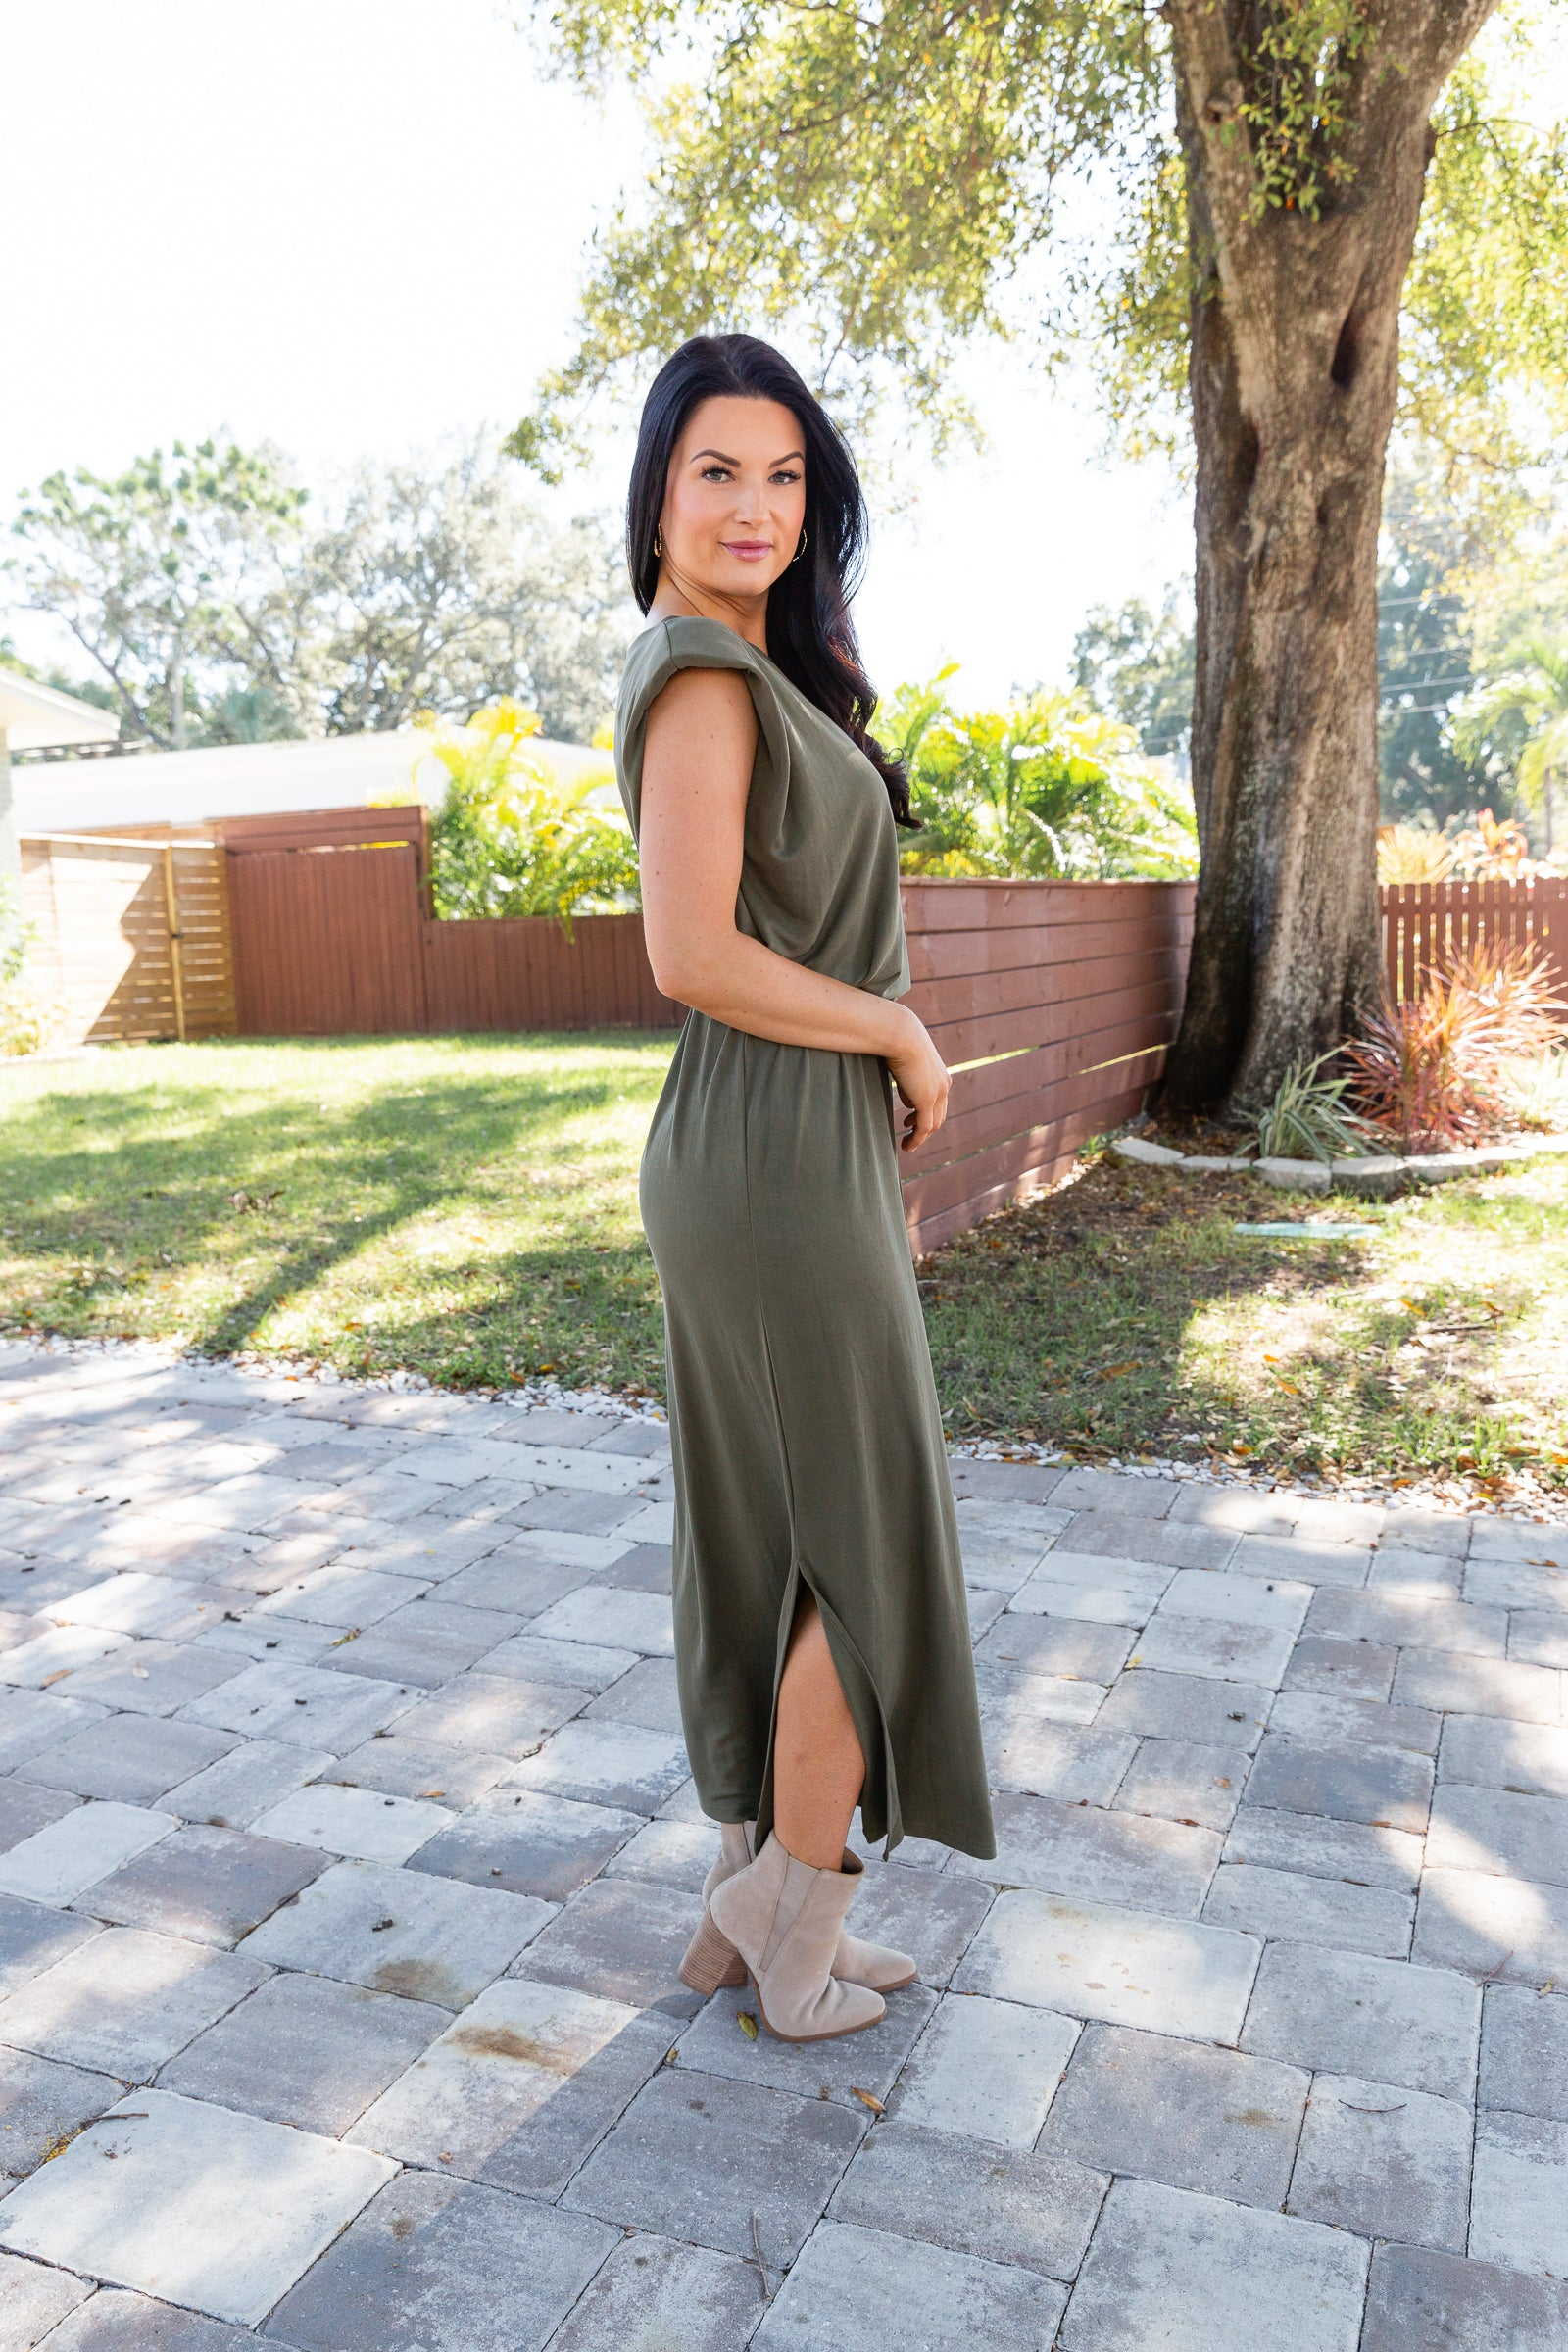 This muscle-style tank maxi dress is sleeveless with shoulder pads next to a banded u-neckline leading down to a loose and oversized dress silhouette with a clean bottom hem.